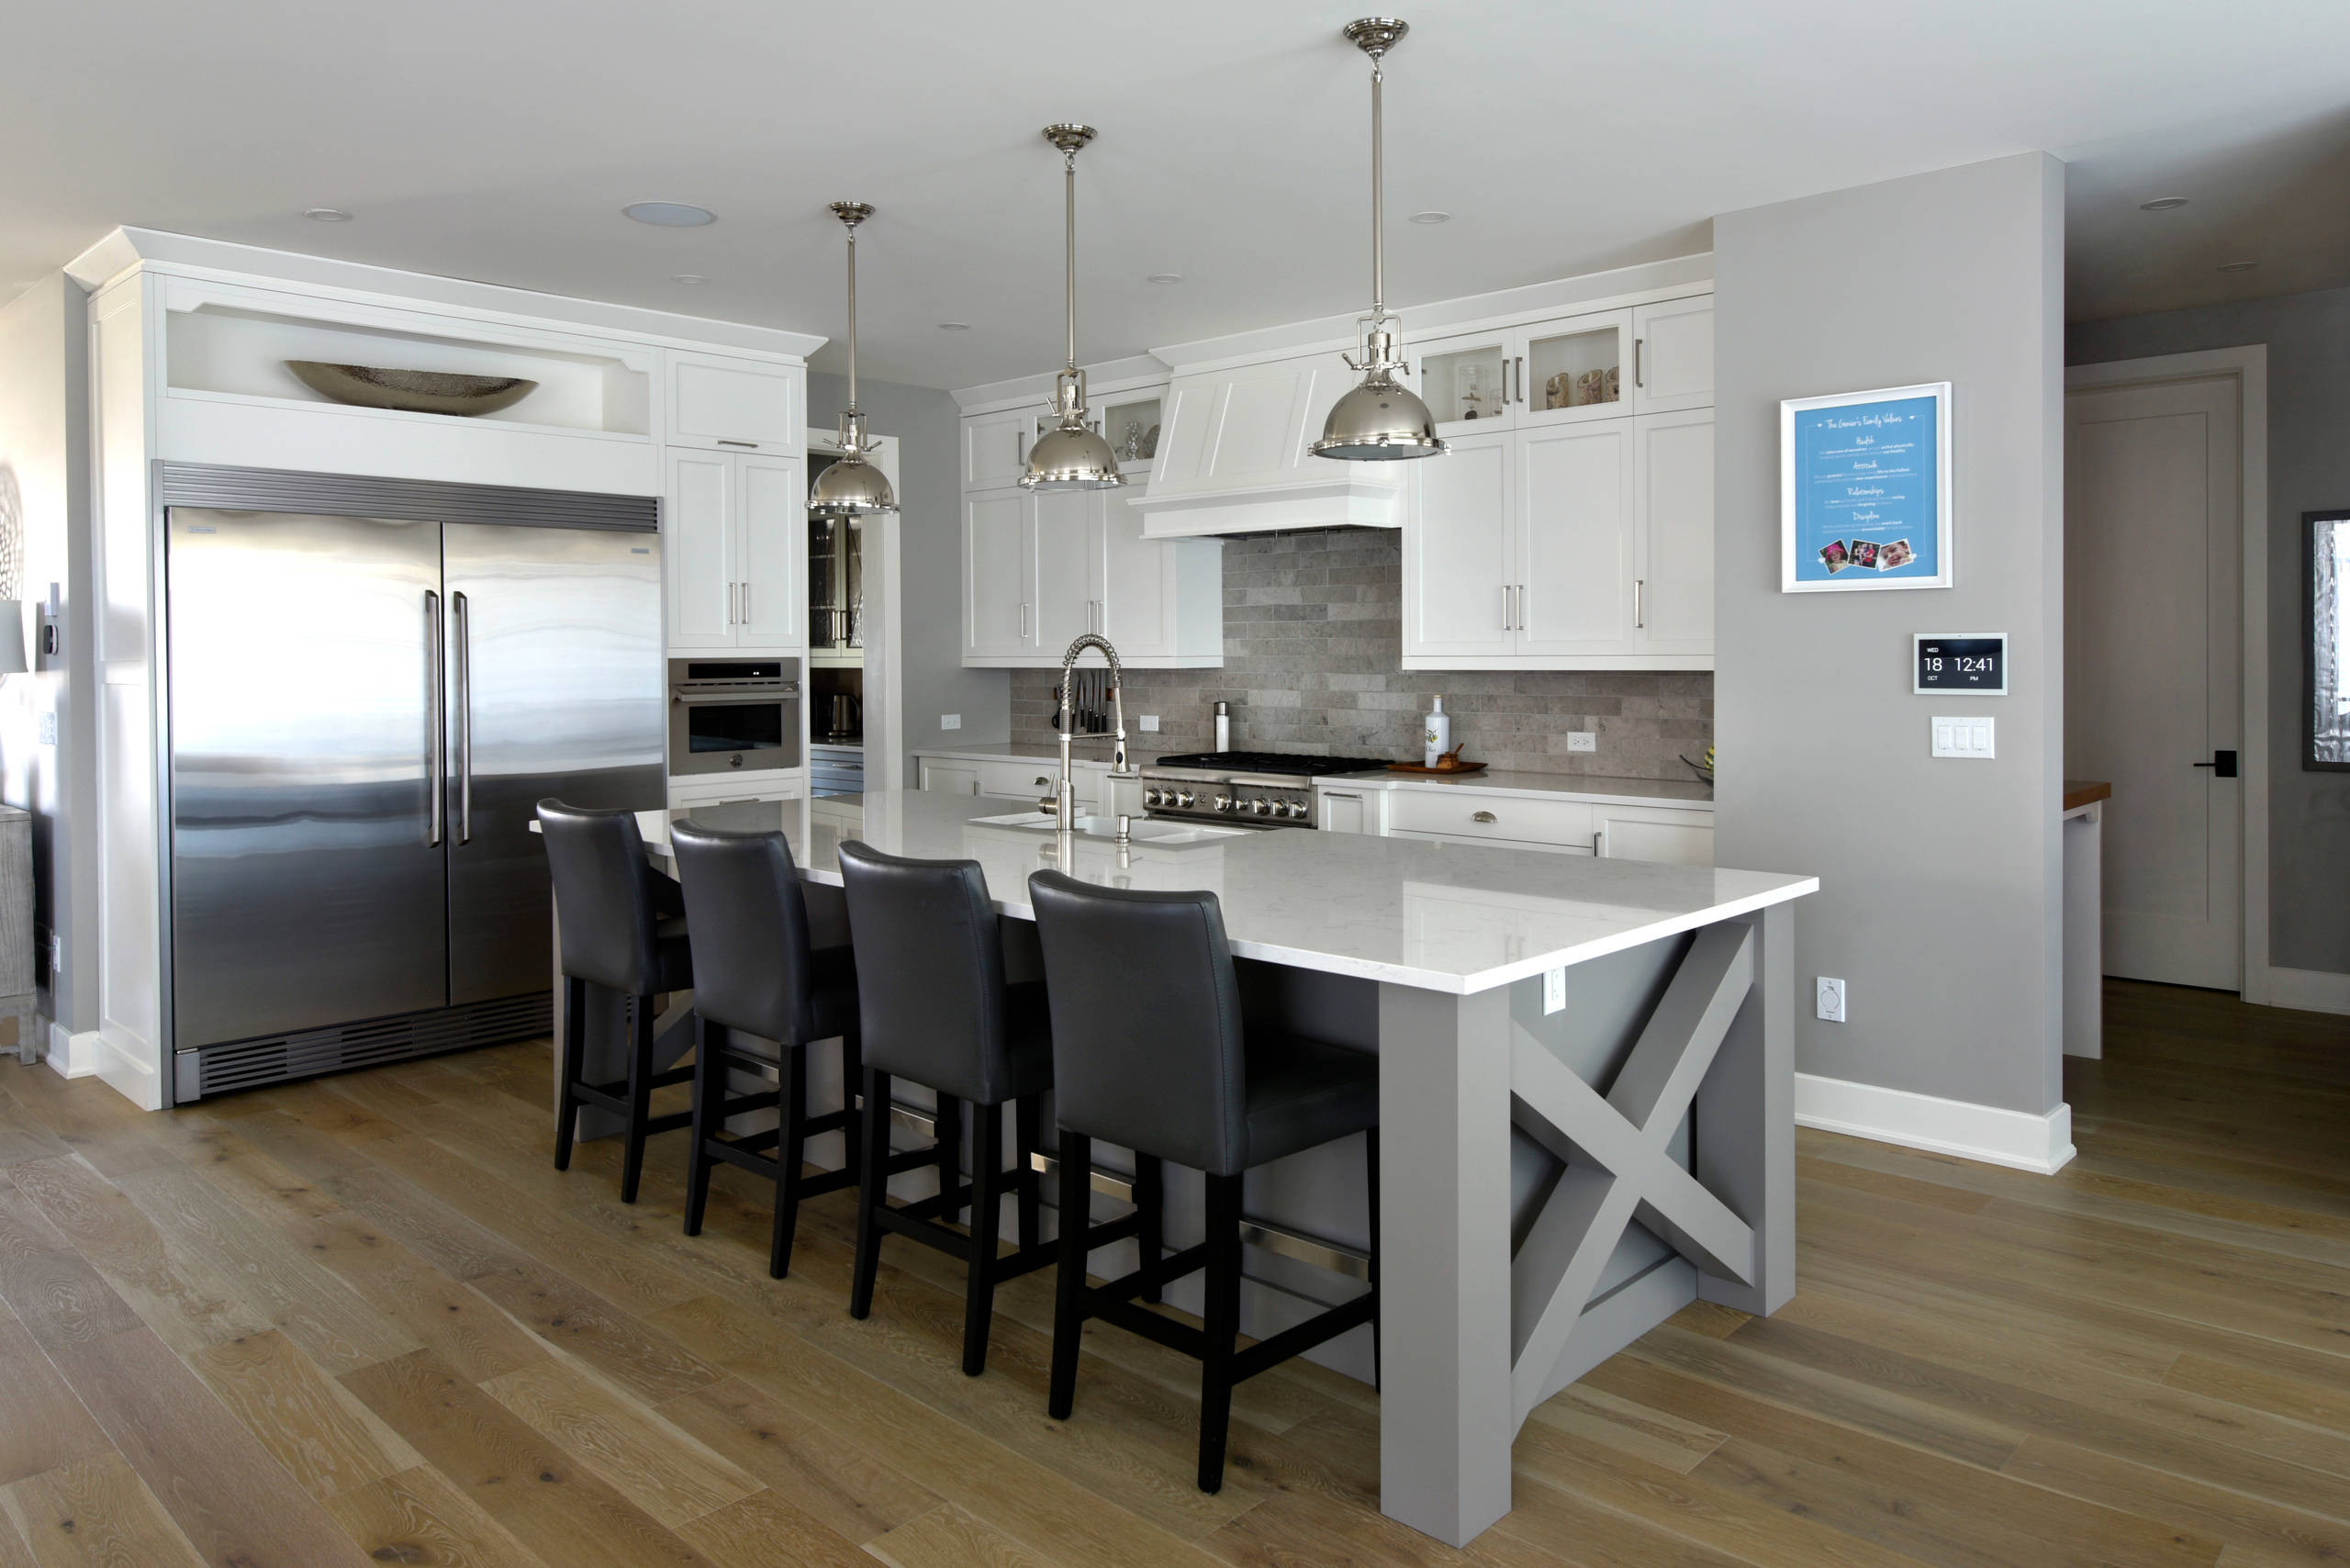 A kitchen island with a cross-pattern end panel